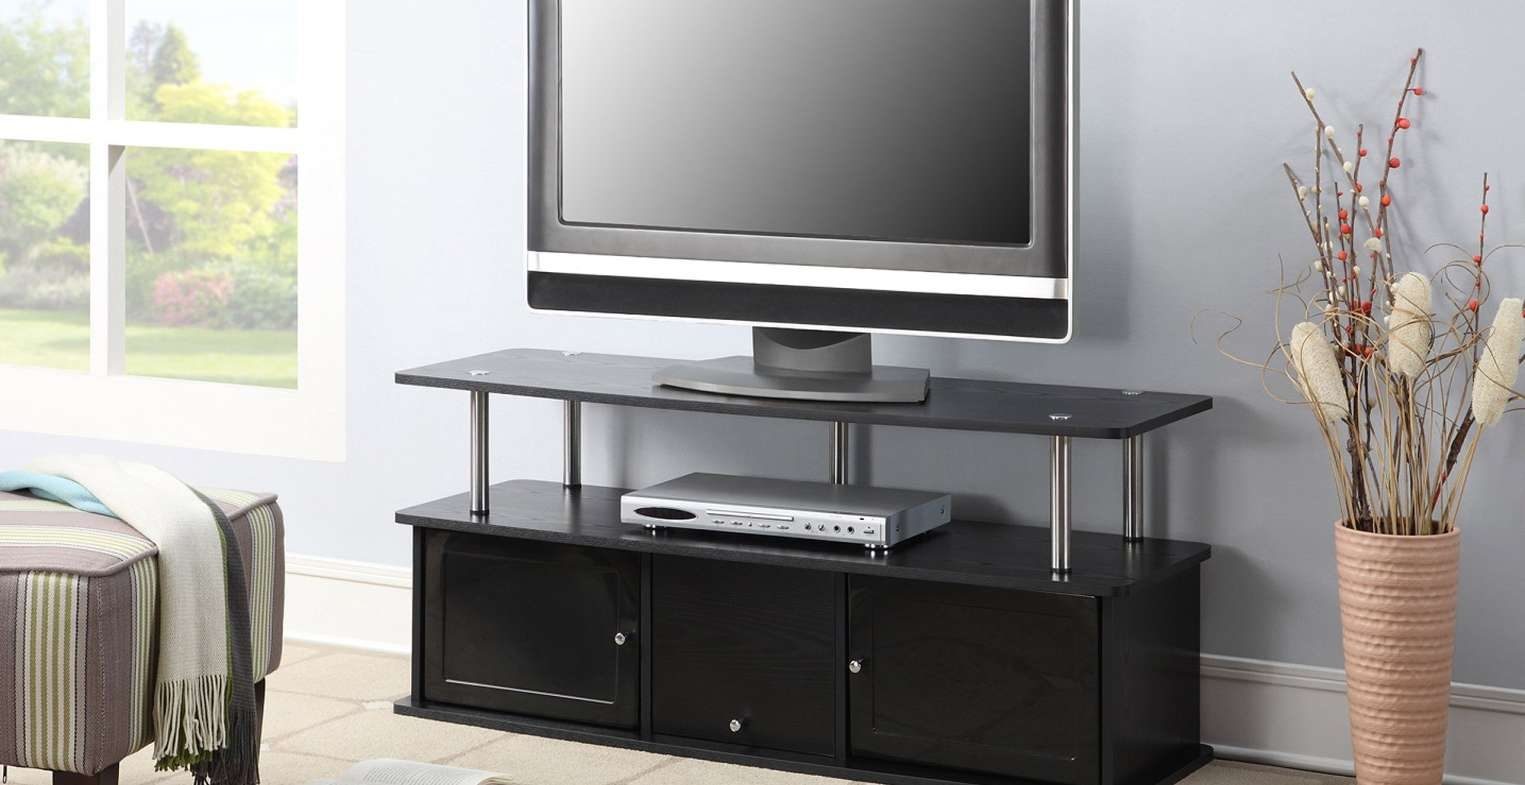 Tv : Tv Stands For Tube Tvs Top Tv Stands For Crt Tvs' Favorite Tv Pertaining To Tv Stands For Tube Tvs (View 11 of 15)